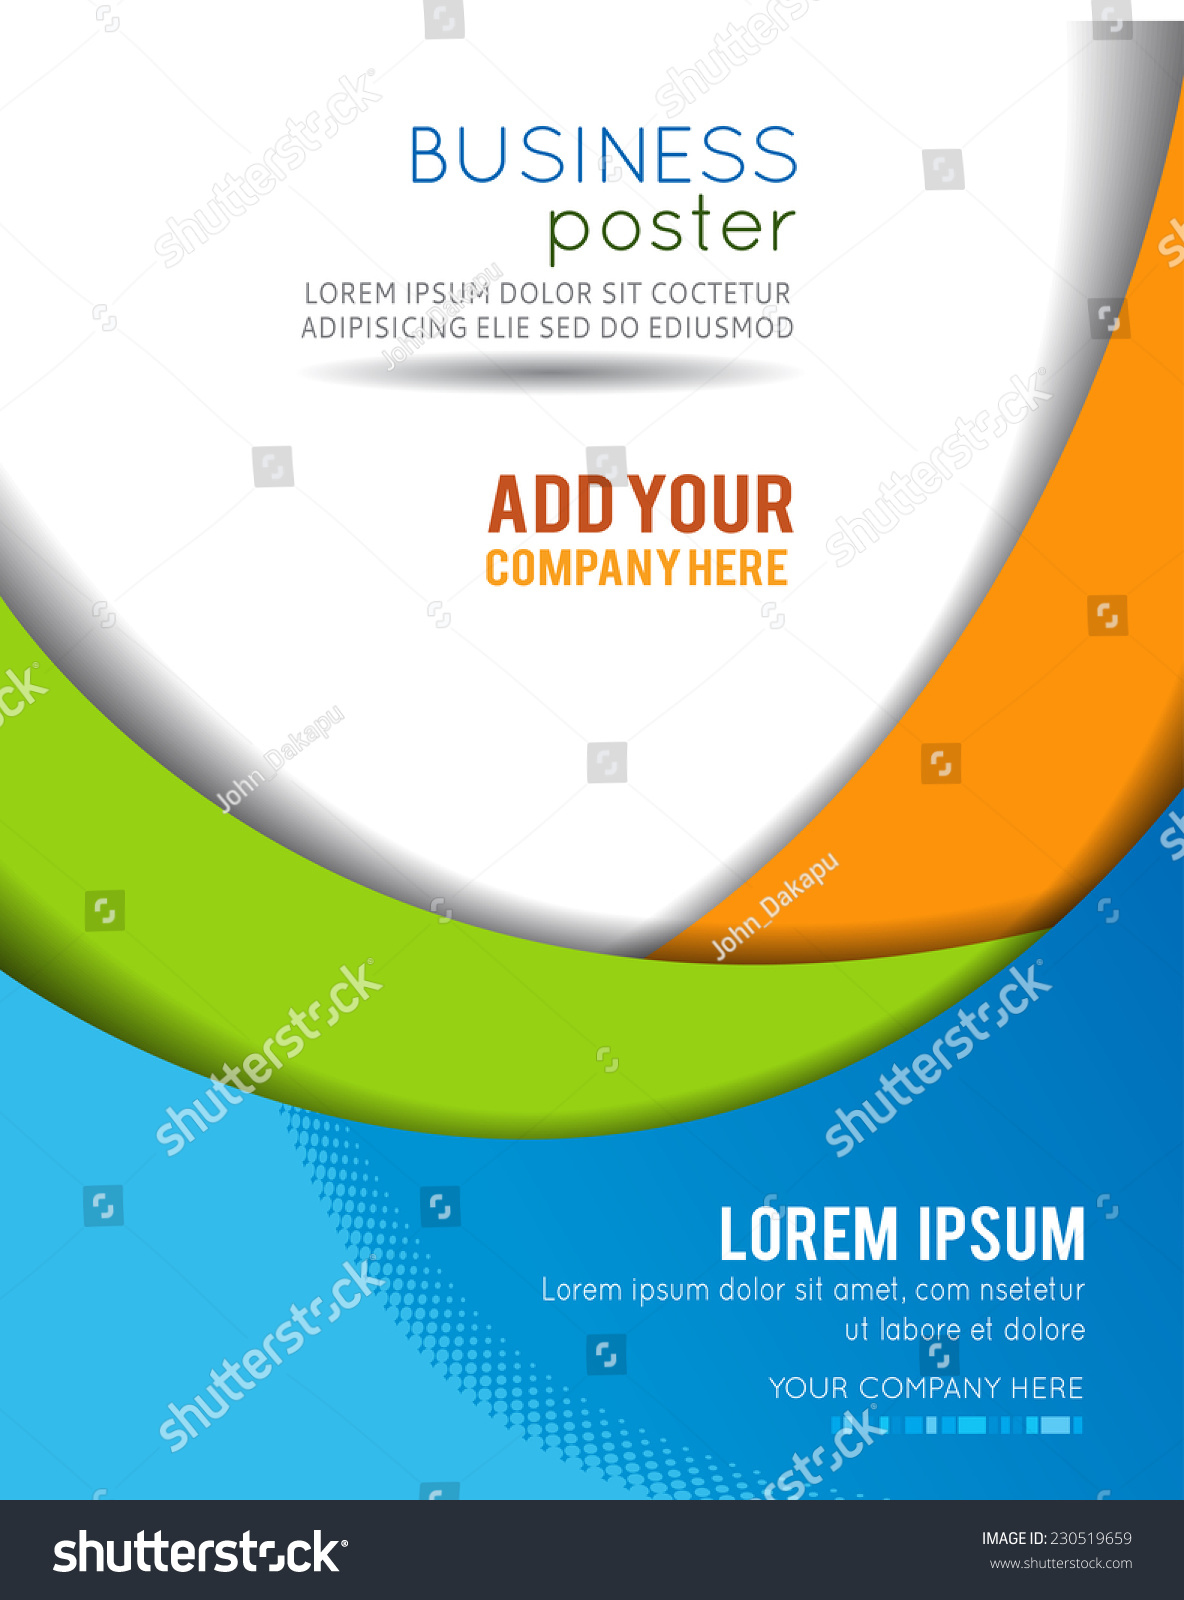 professional business design layout template corporate stock professional business design layout template or corporate banner design magazine cover publishing and print